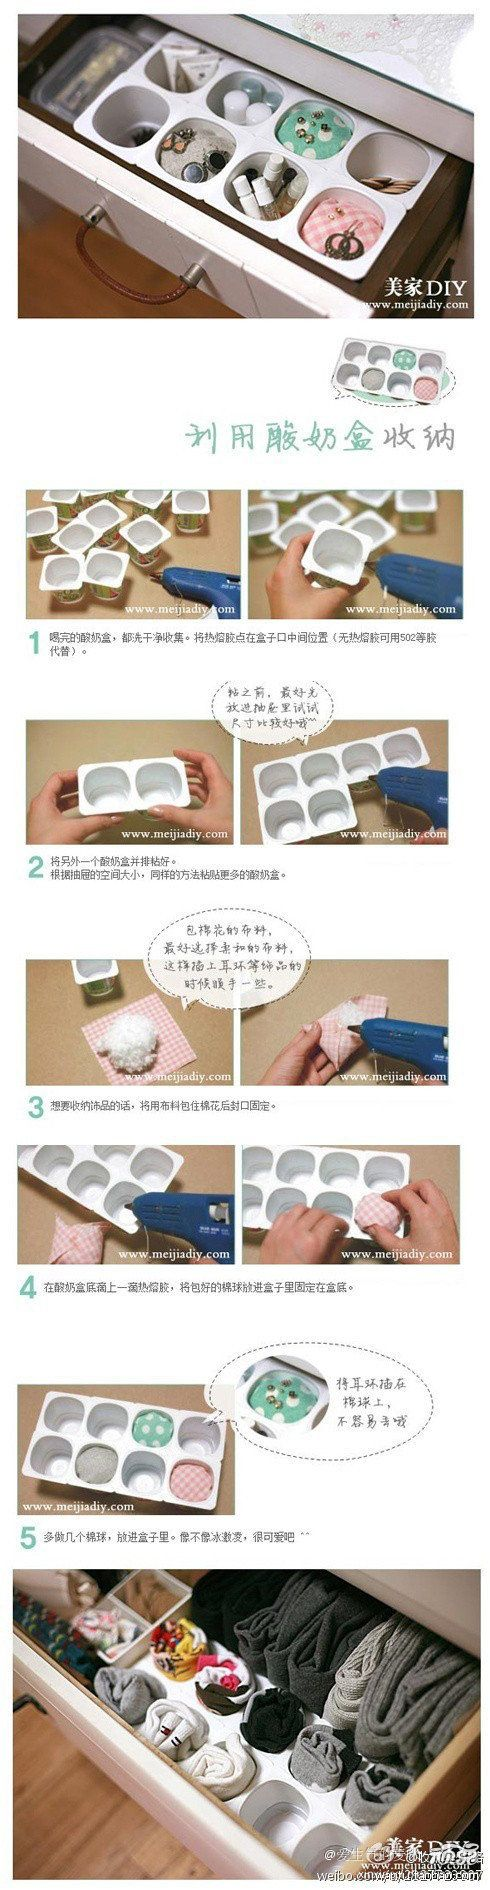 DIY Yogurt Cup Organizer